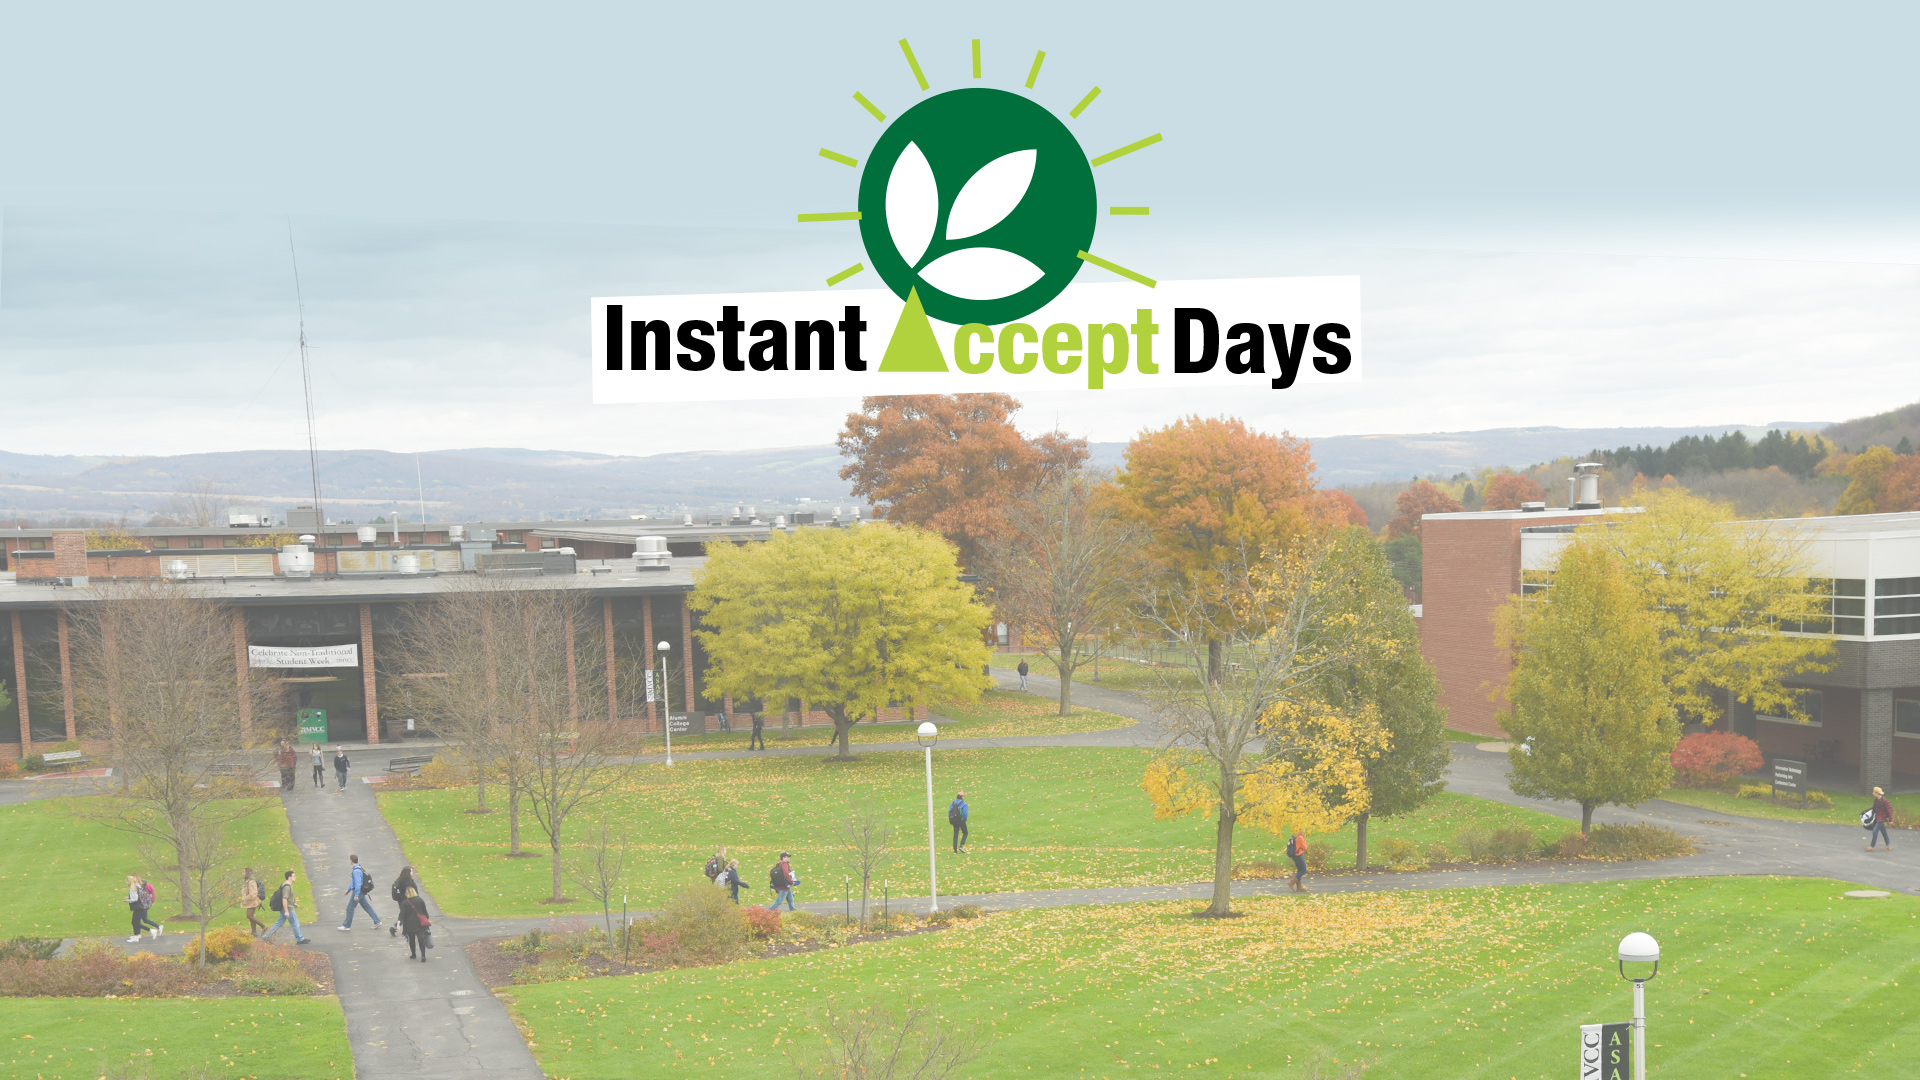 Instant Accept Days